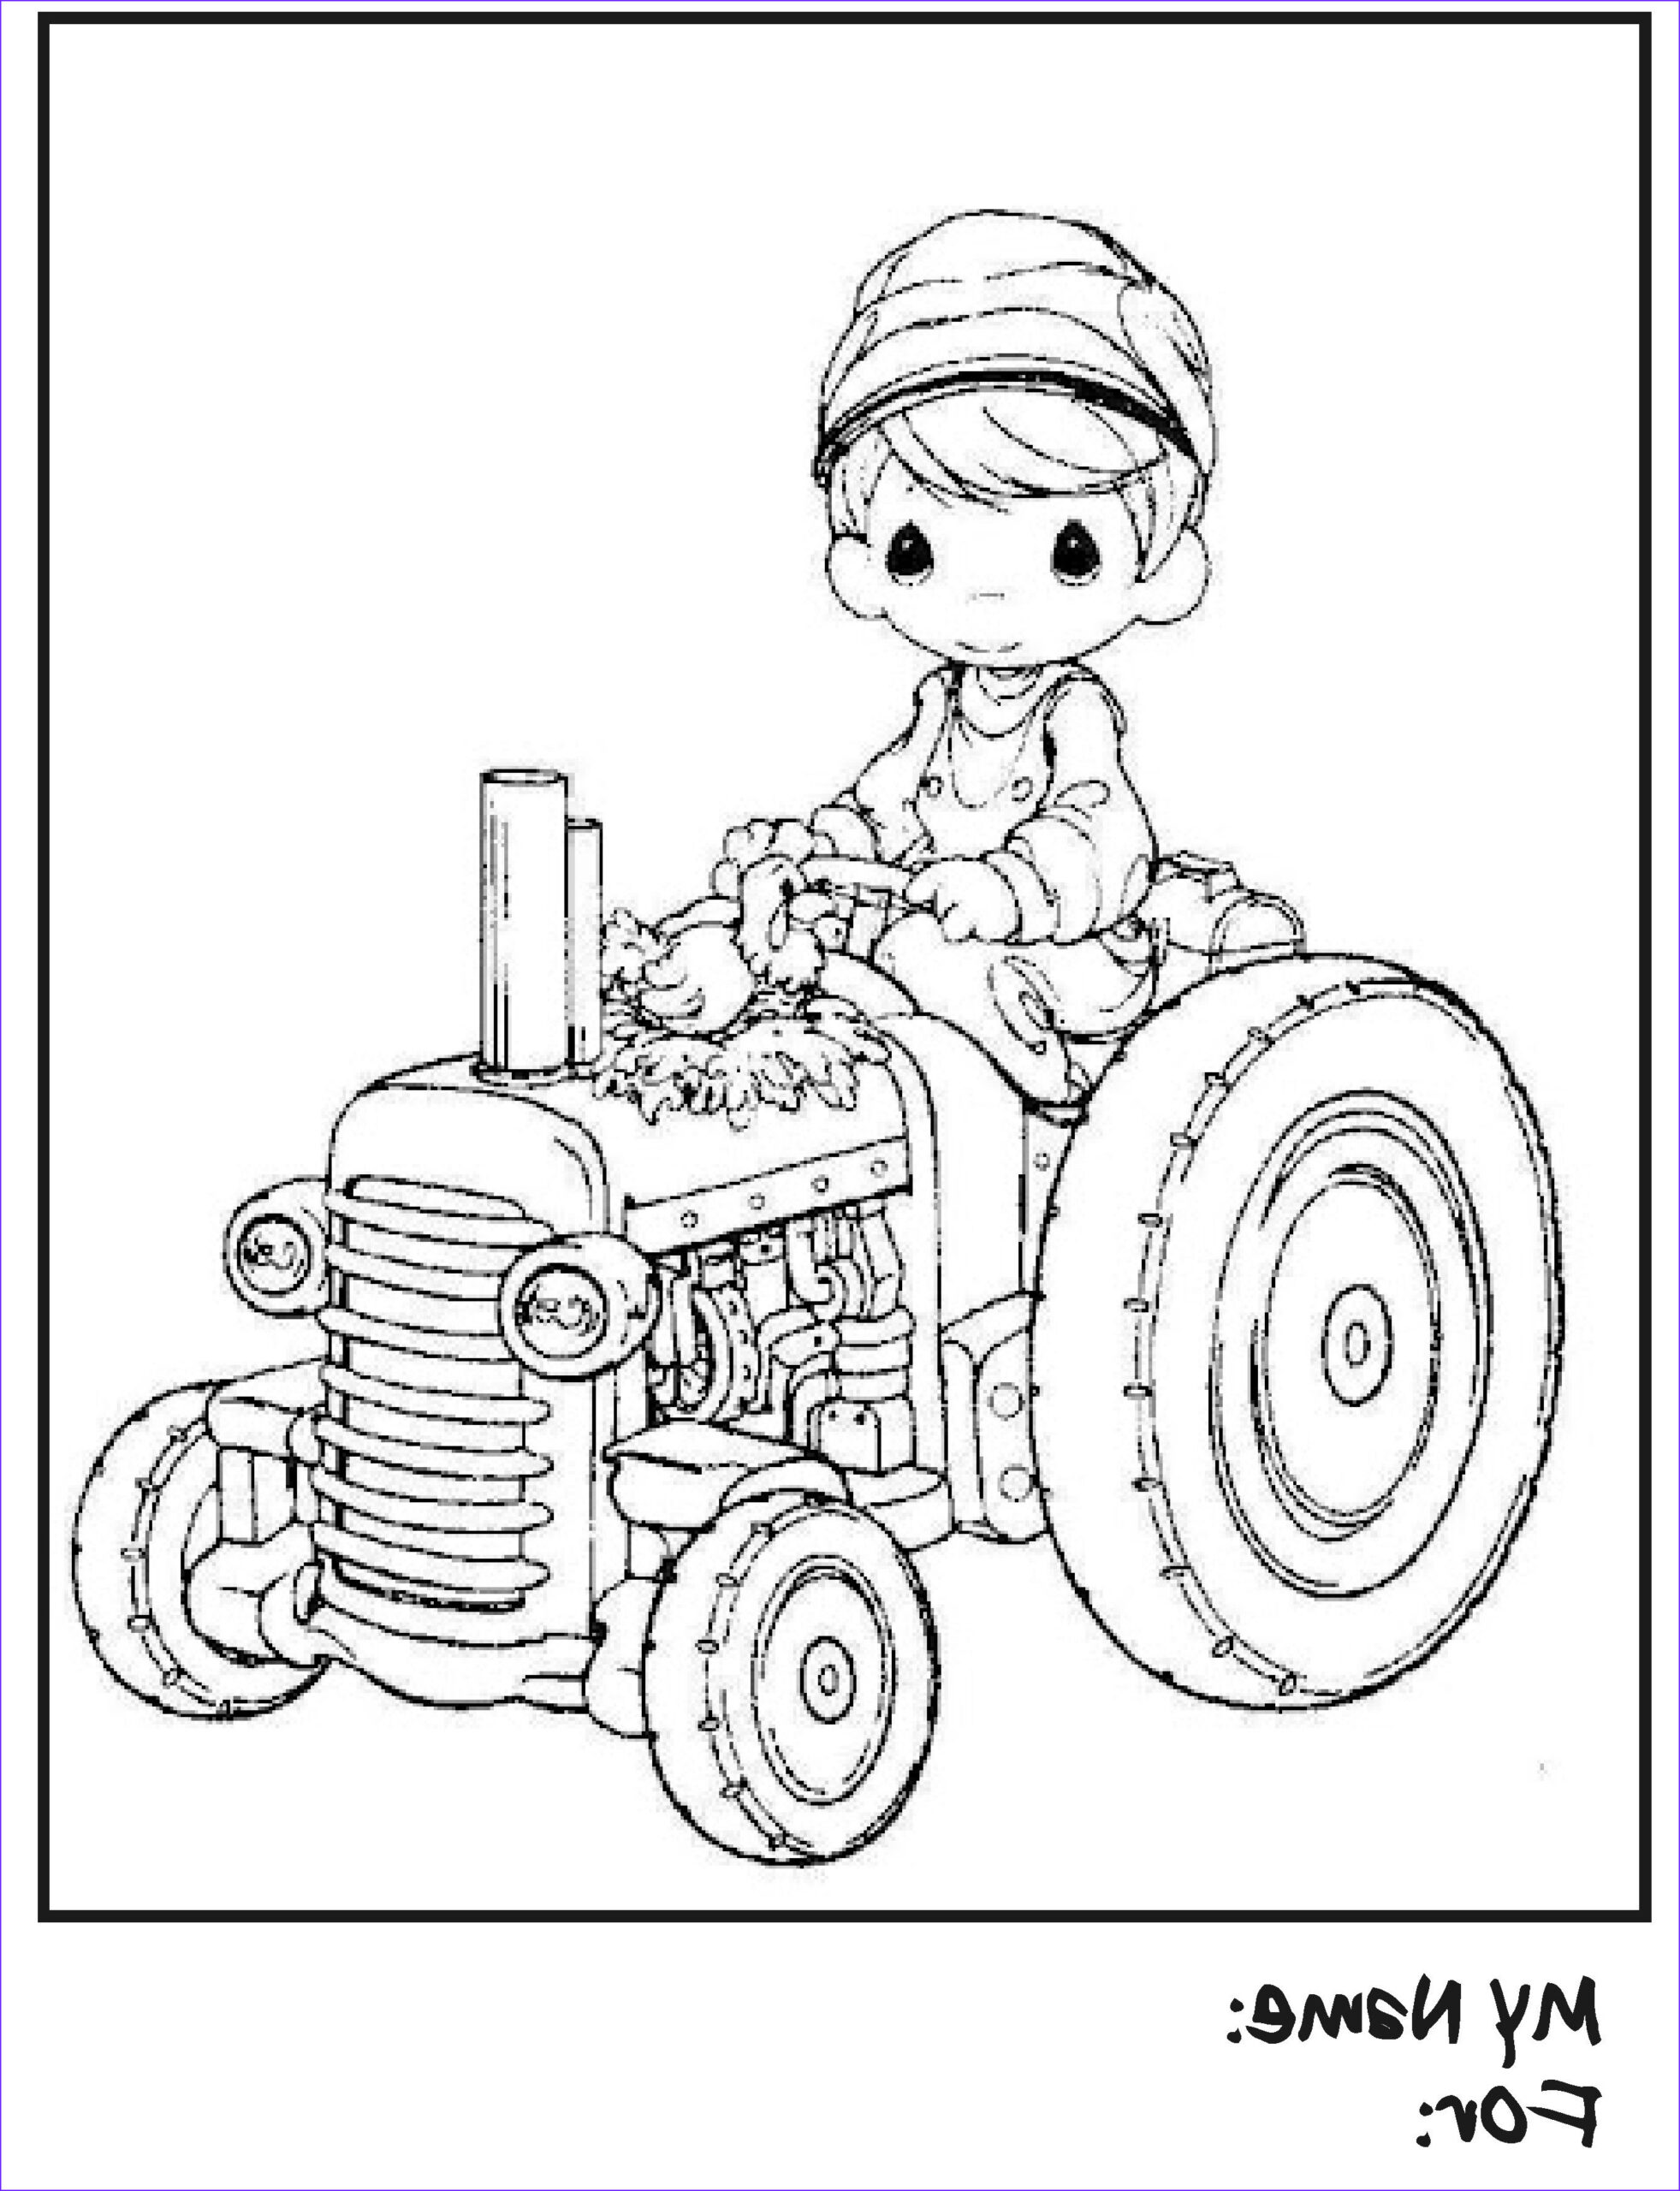 Tractor Coloring Book Beautiful Image Tractor Coloring Pages for Kids these Tractor Coloring